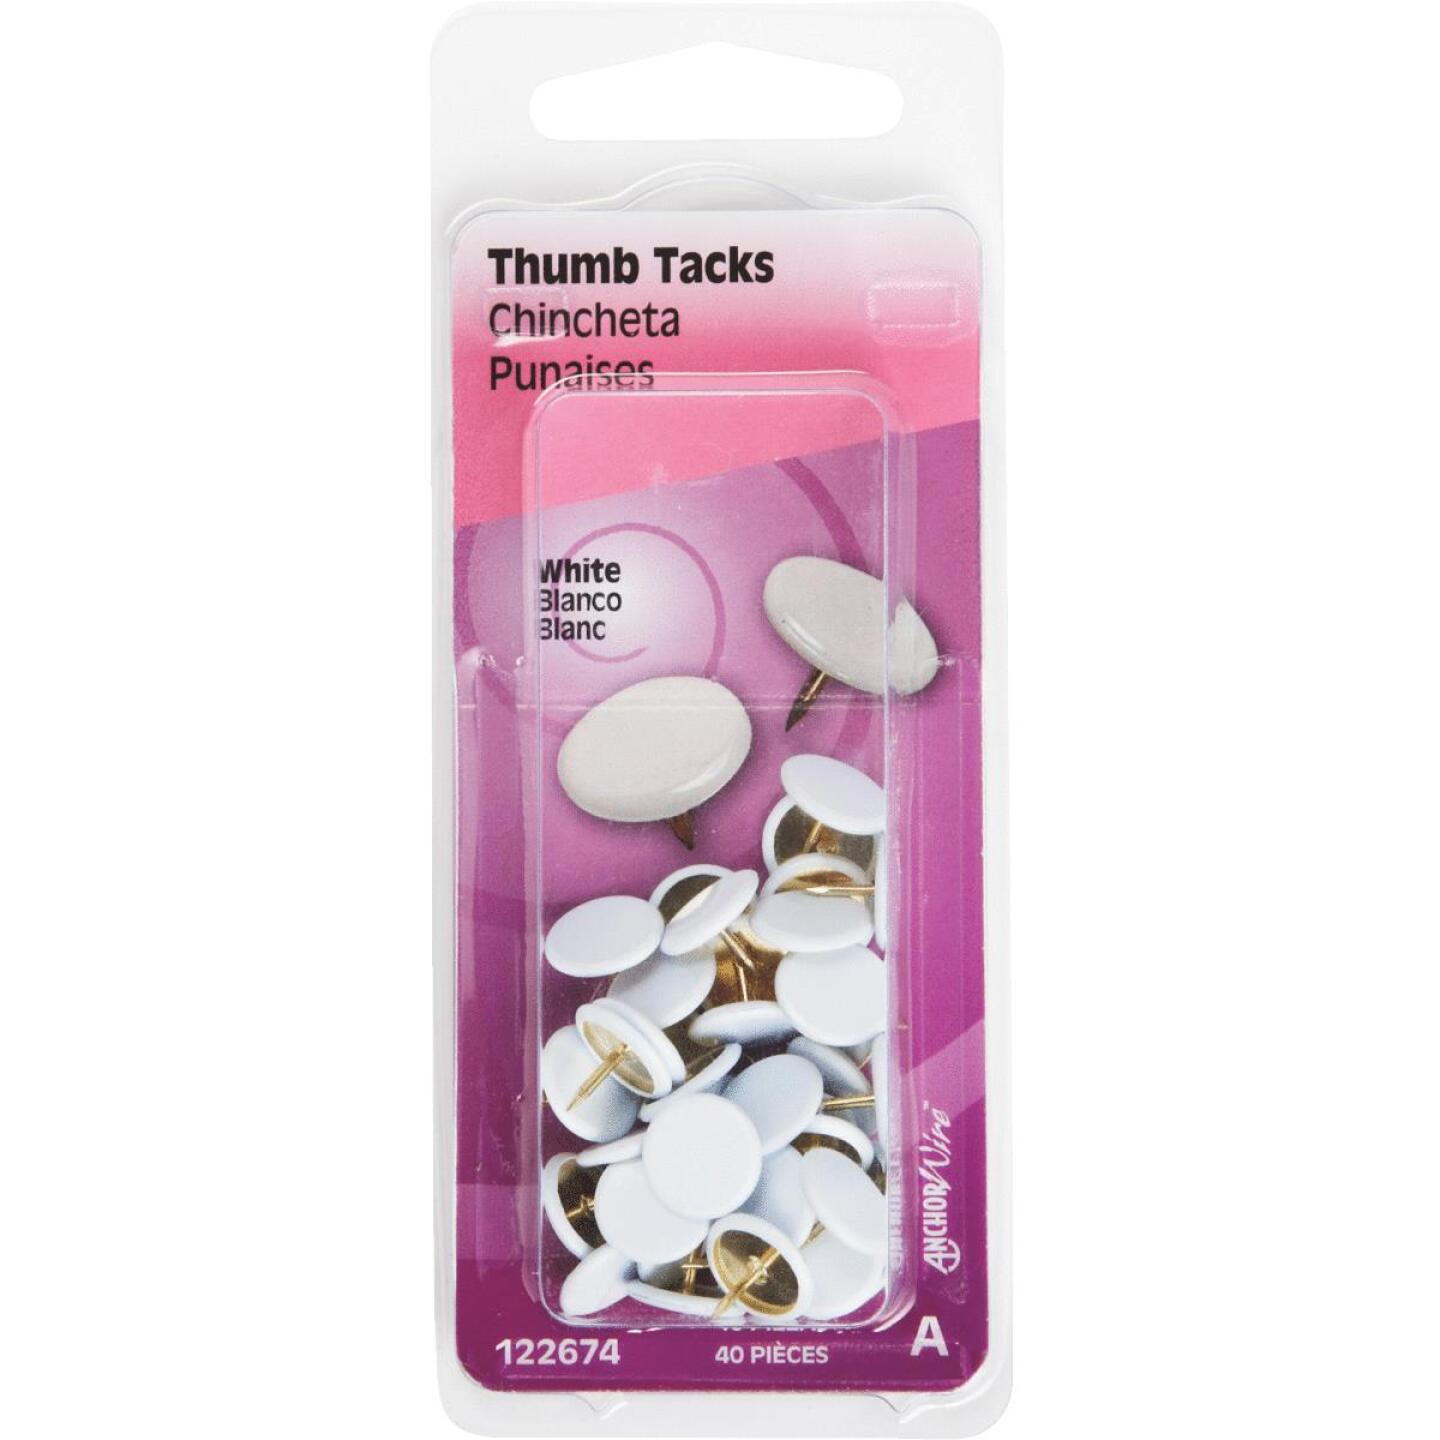 Hillman Anchor Wire White 23/64 In. x 15/64 In. Thumb Tack (40 Ct.) Image 4